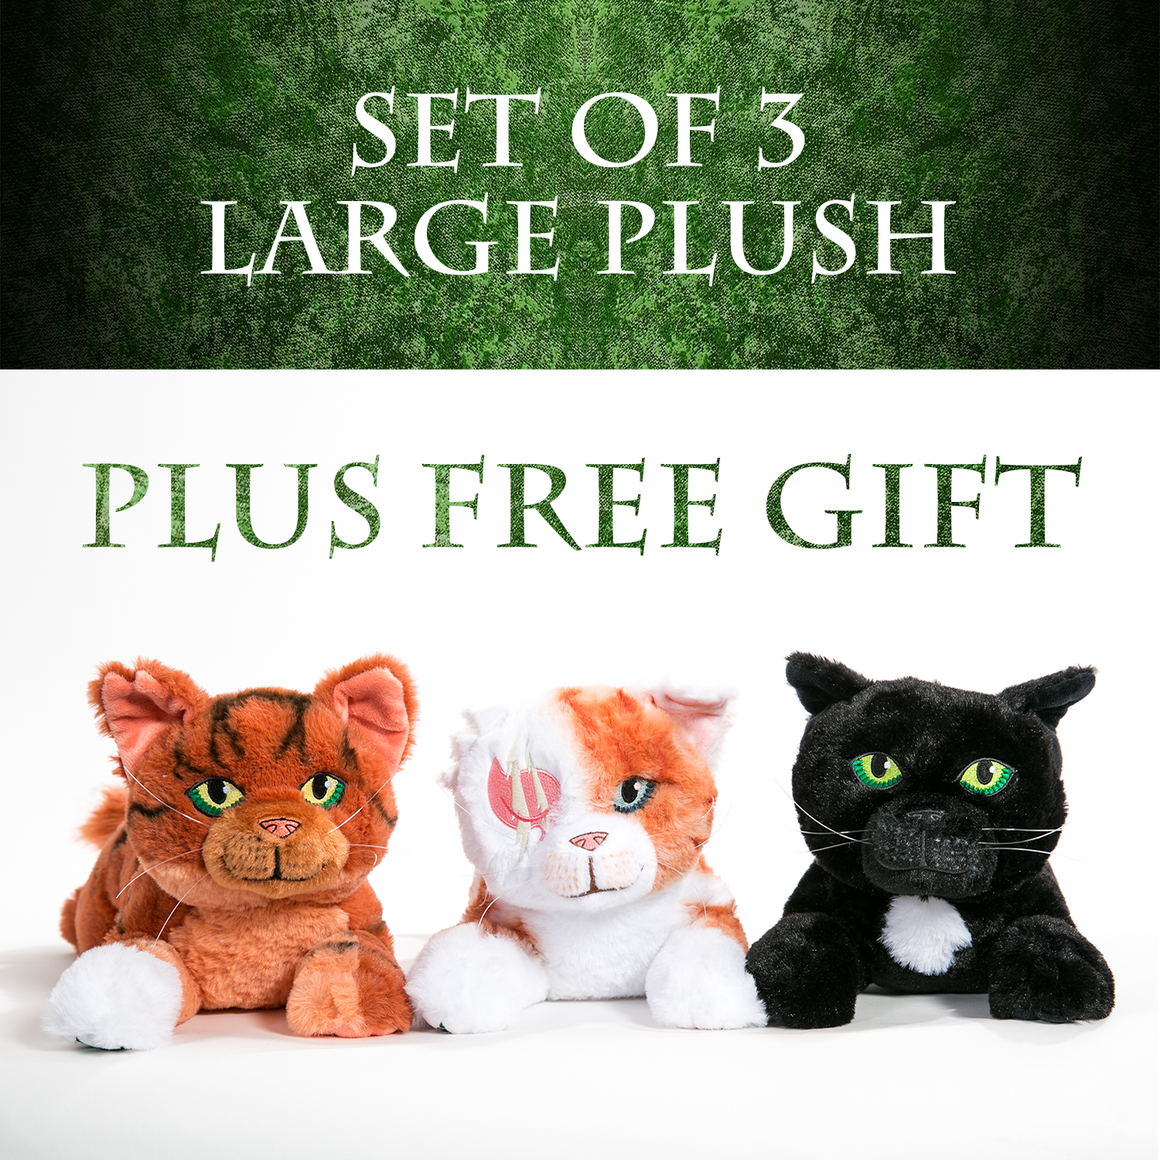 SET OF 3 LARGE PLUSH - Squirrelflight, Brightheart & Ravenpaw + FREE GIFT